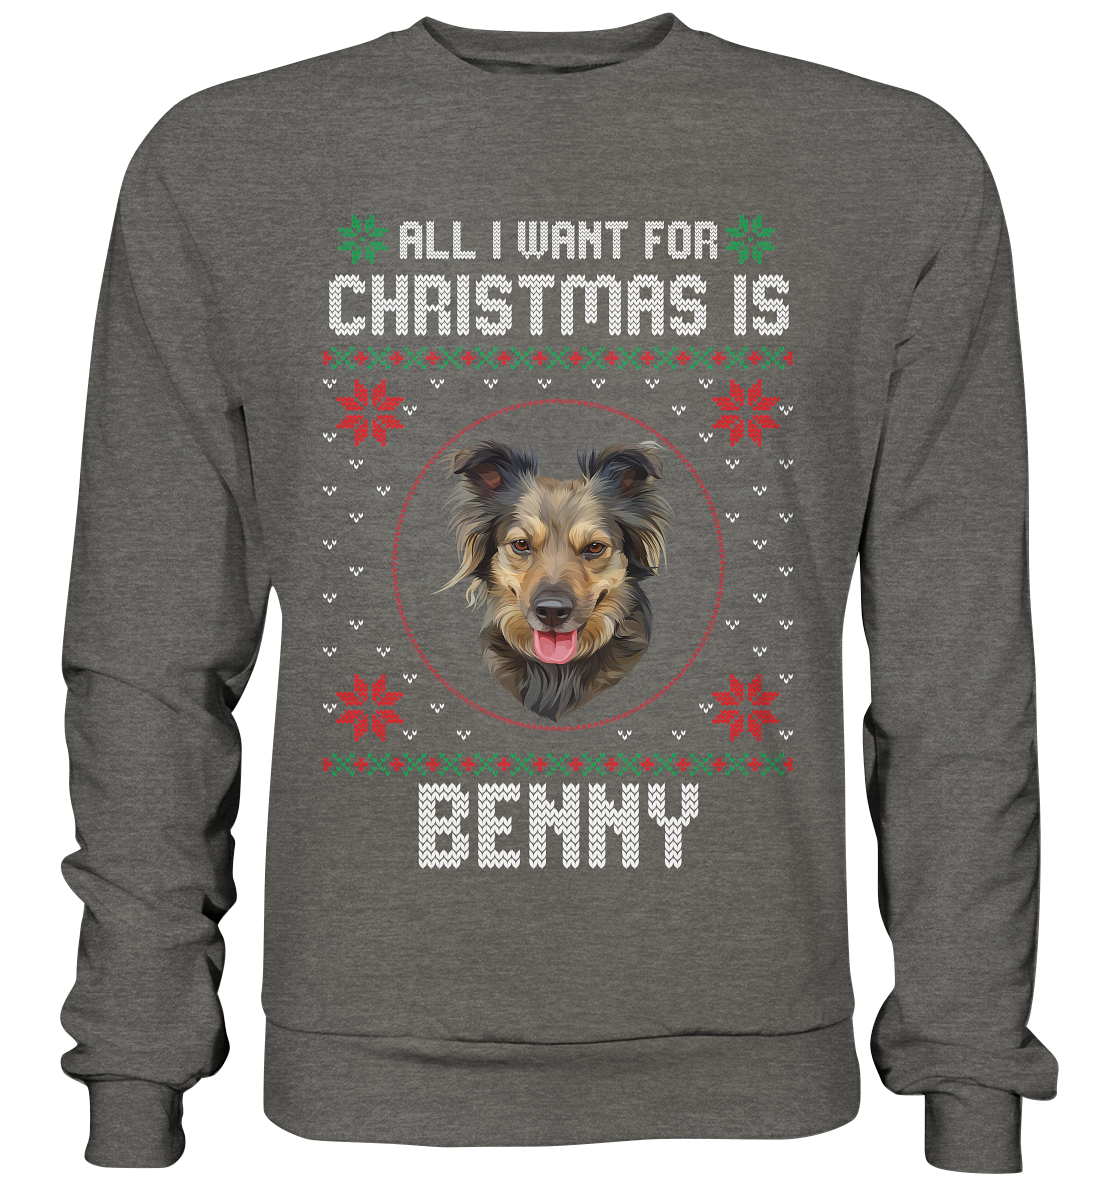 I want for Christmas - Basic Sweatshirt